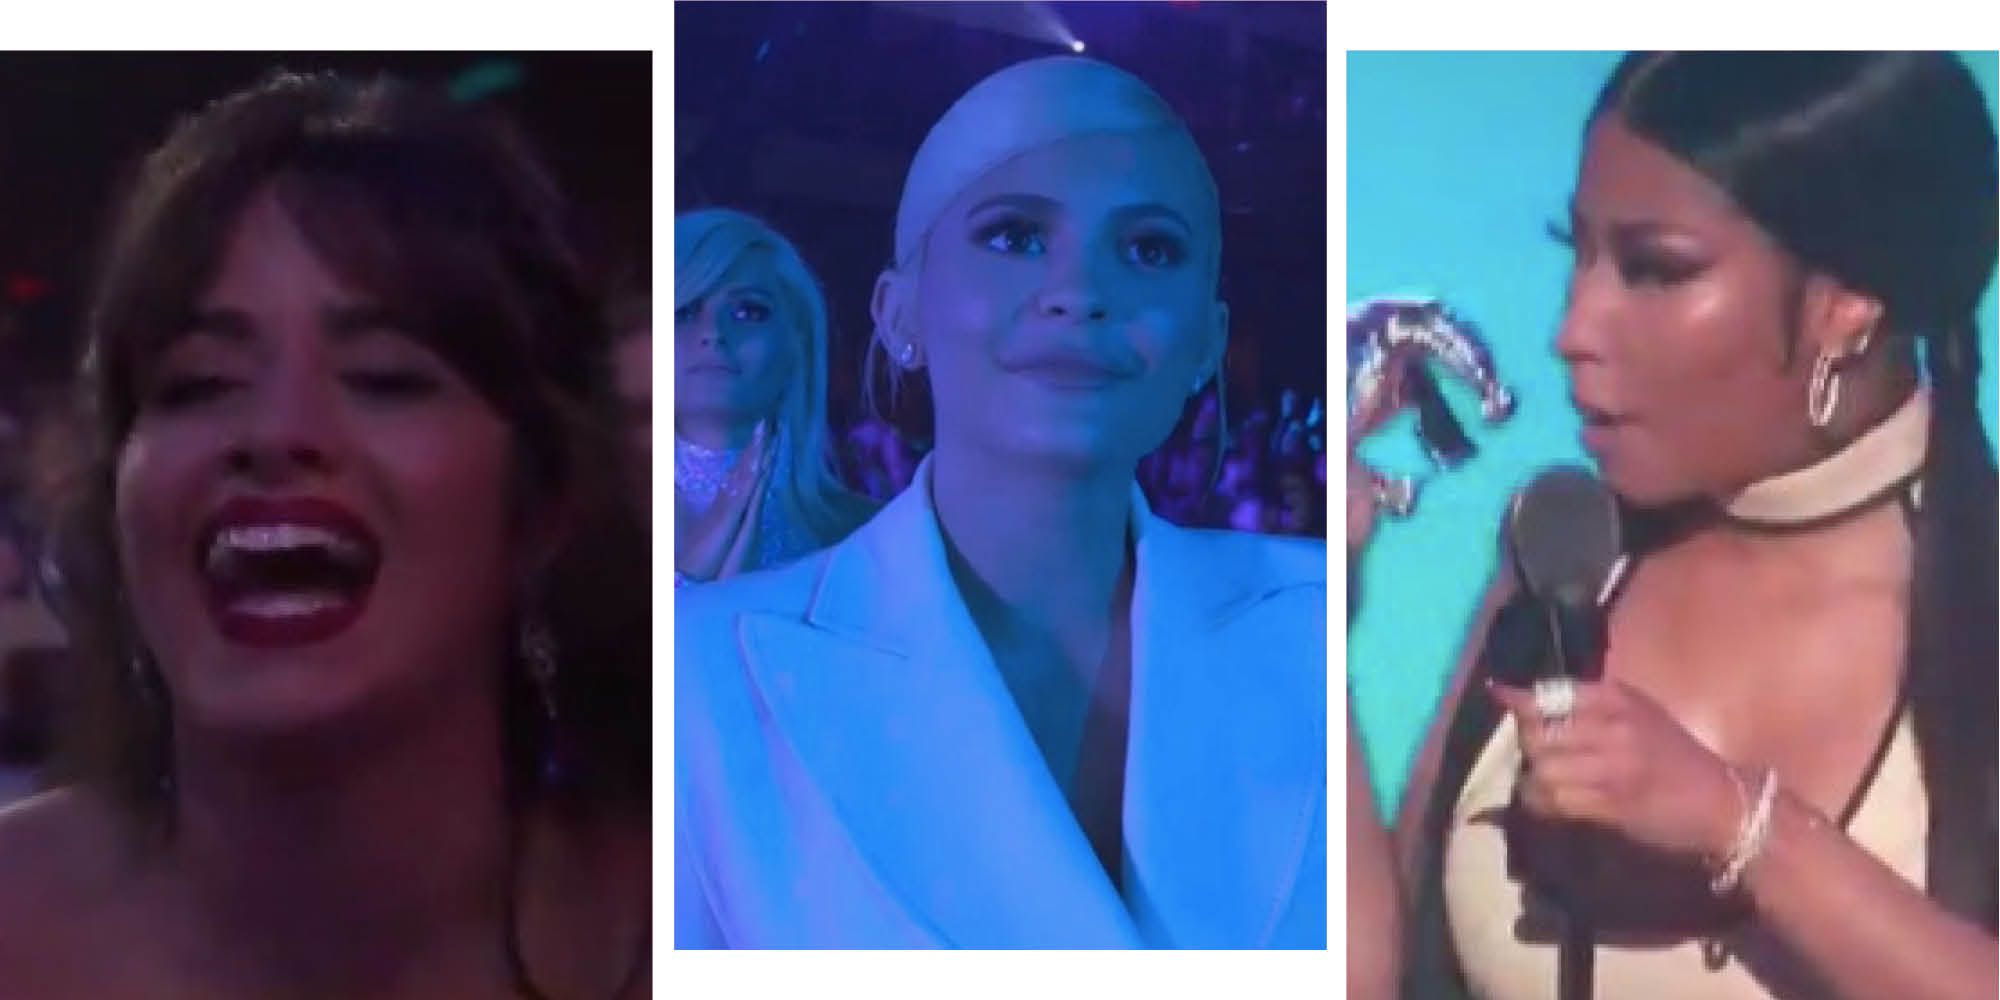 8 of the most awkward moments from the MTV VMAs